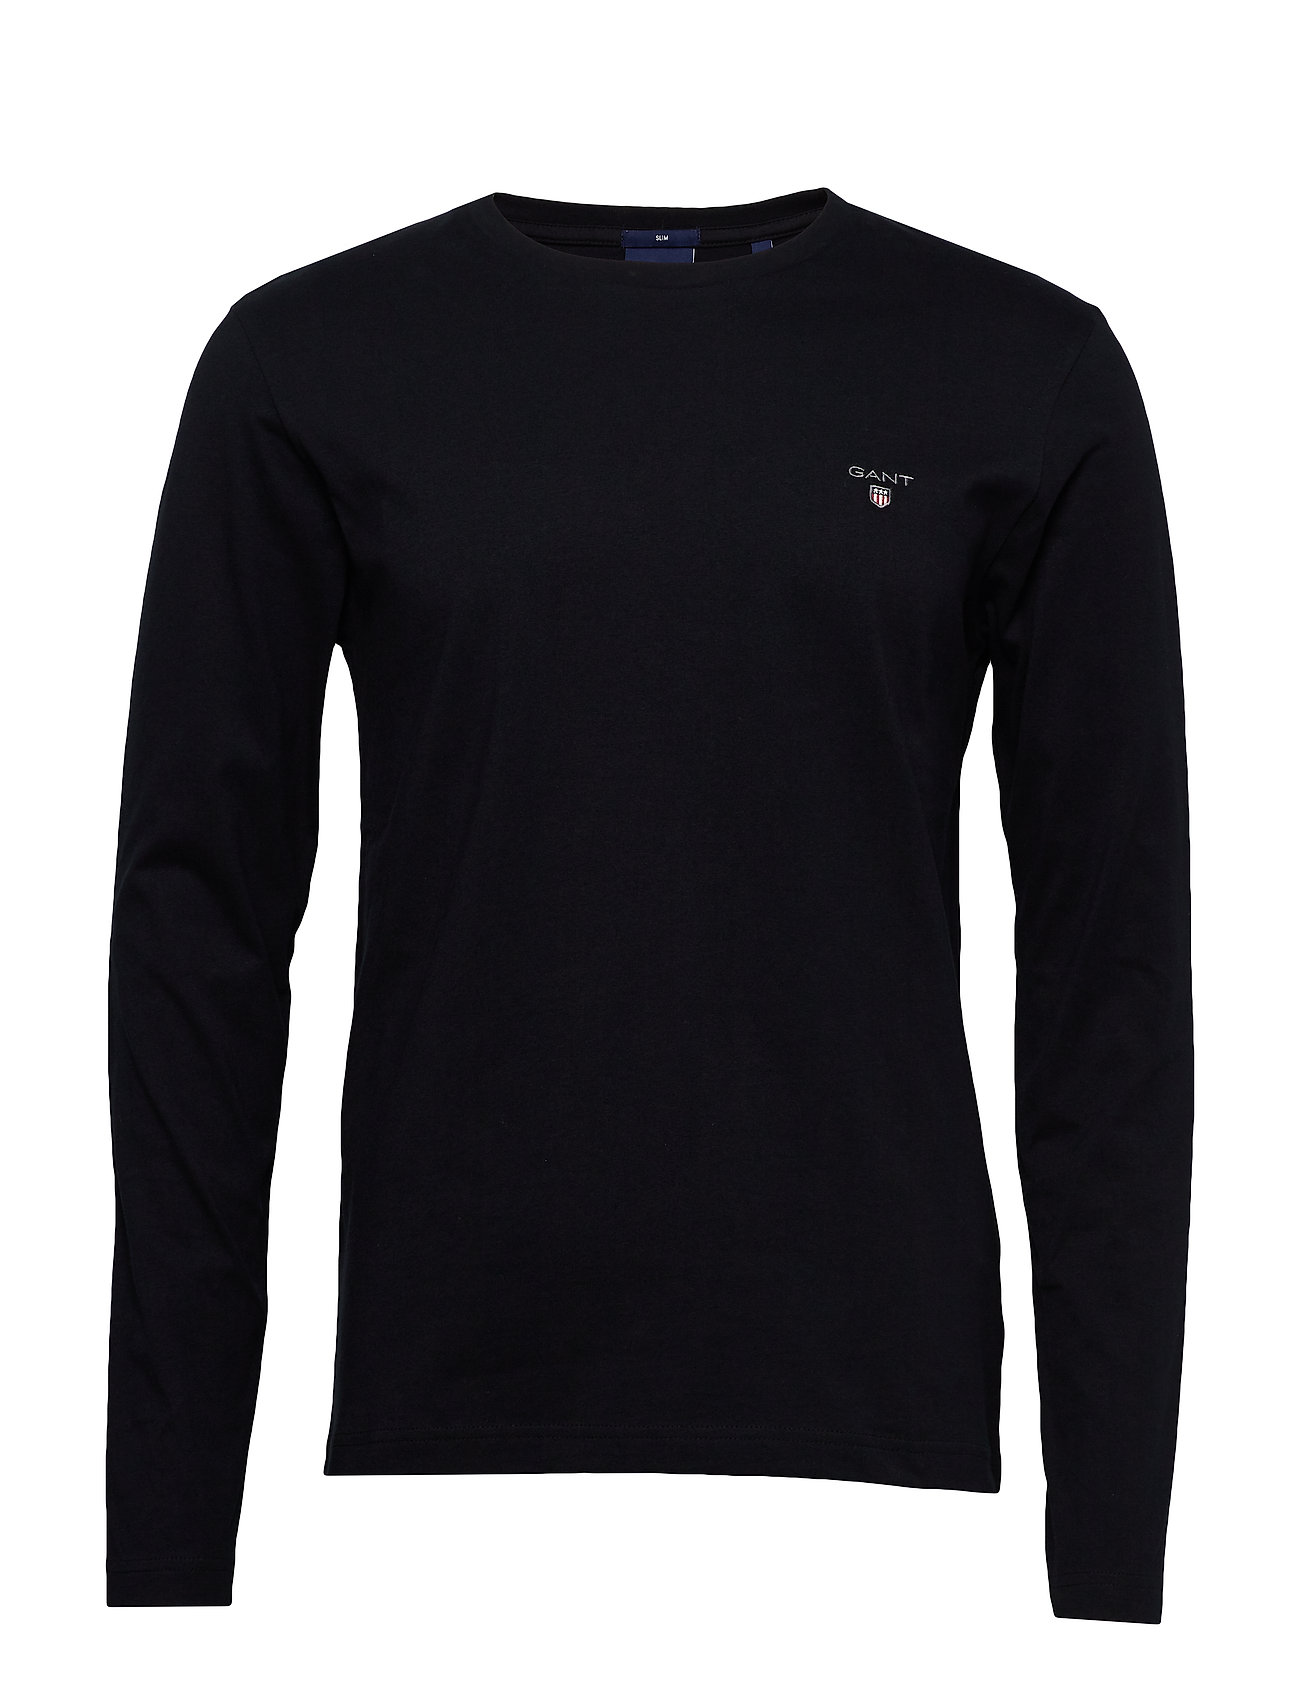 Gant THE ORIGINAL SLIM LS T-SHIRT - BLACK